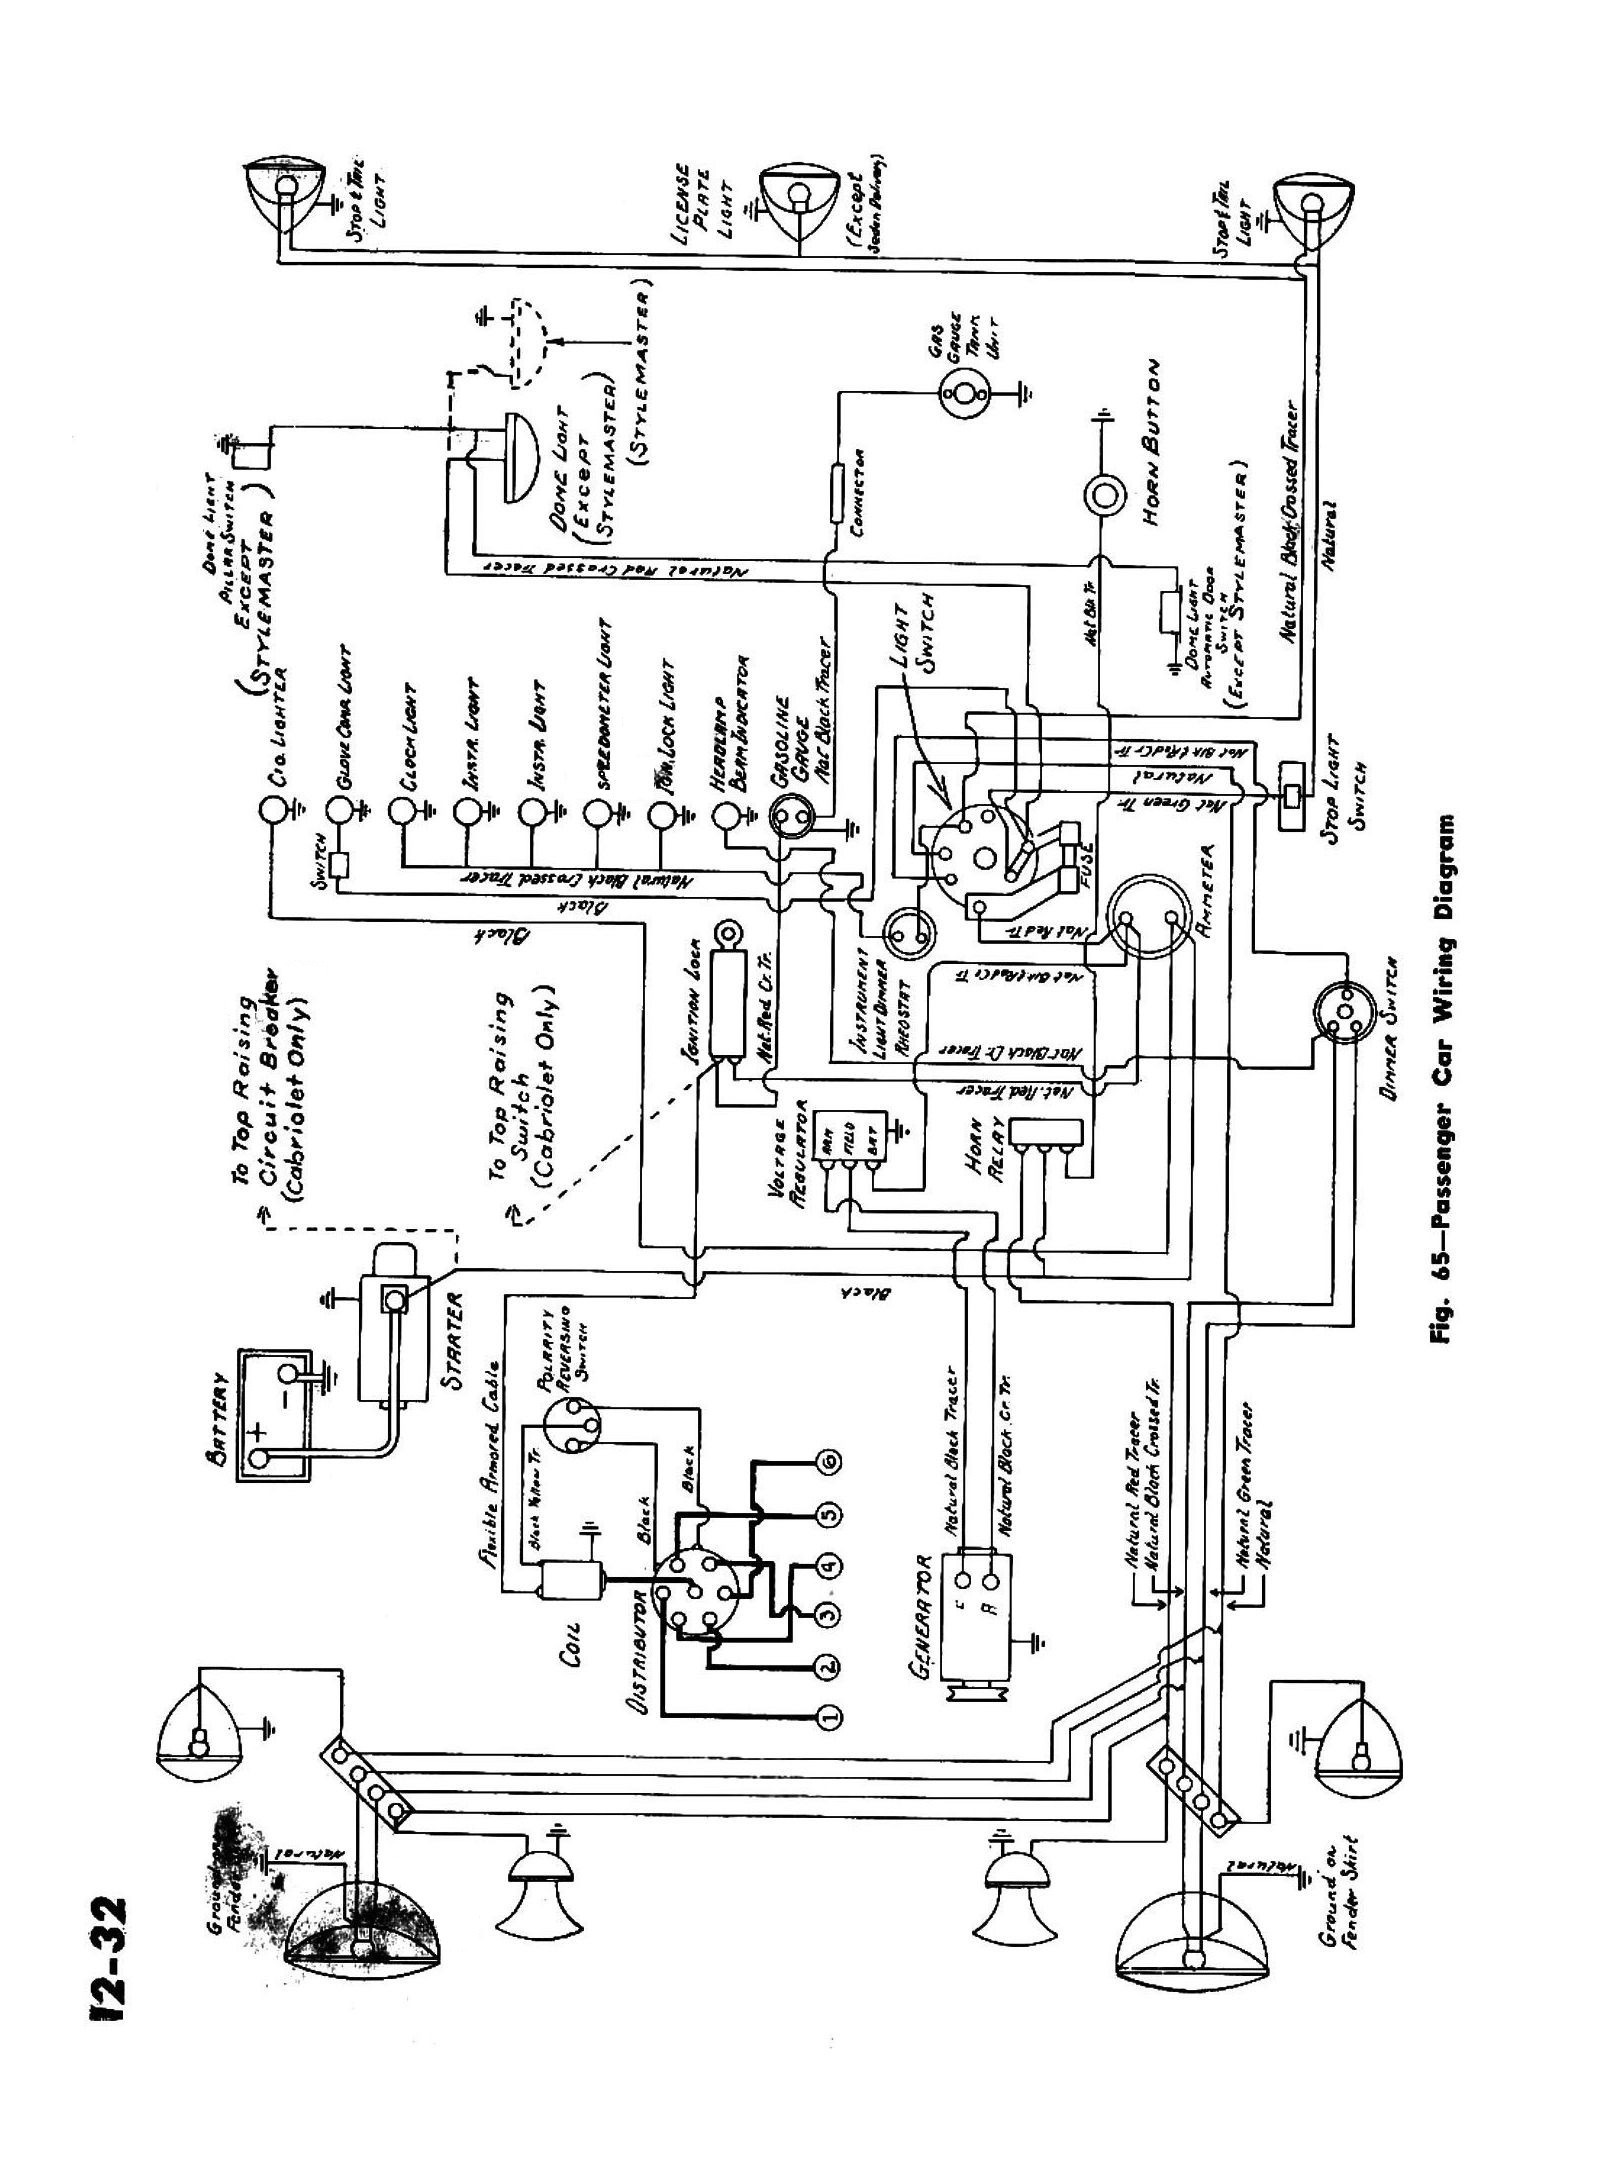 hight resolution of automotive wiring diagram website wiring library rh 74 evitta de automotive wiring symbols dodge wiring diagram